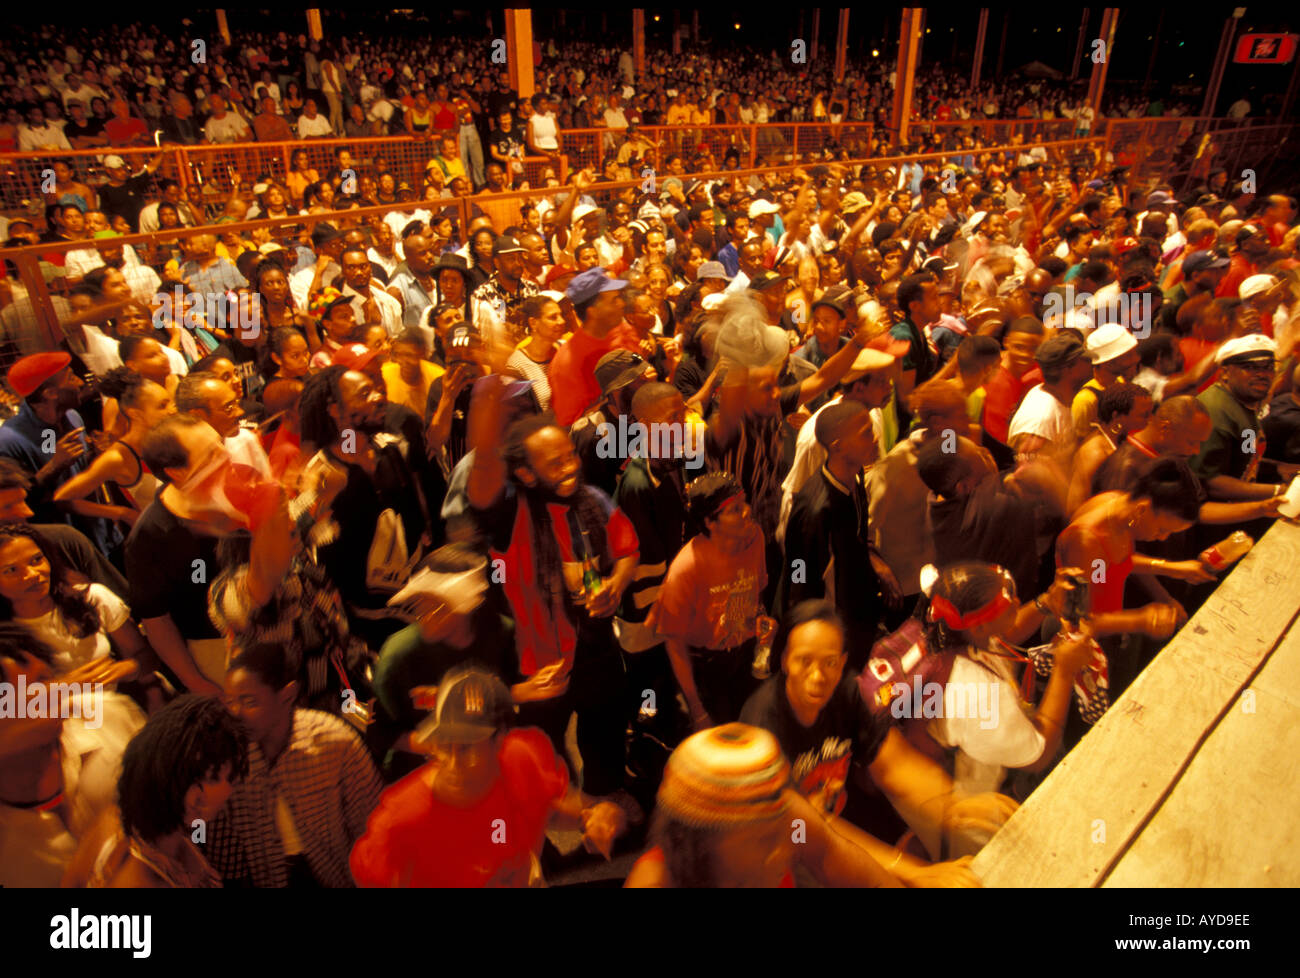 Trinidad Carnival band competition audience reaction - Stock Image